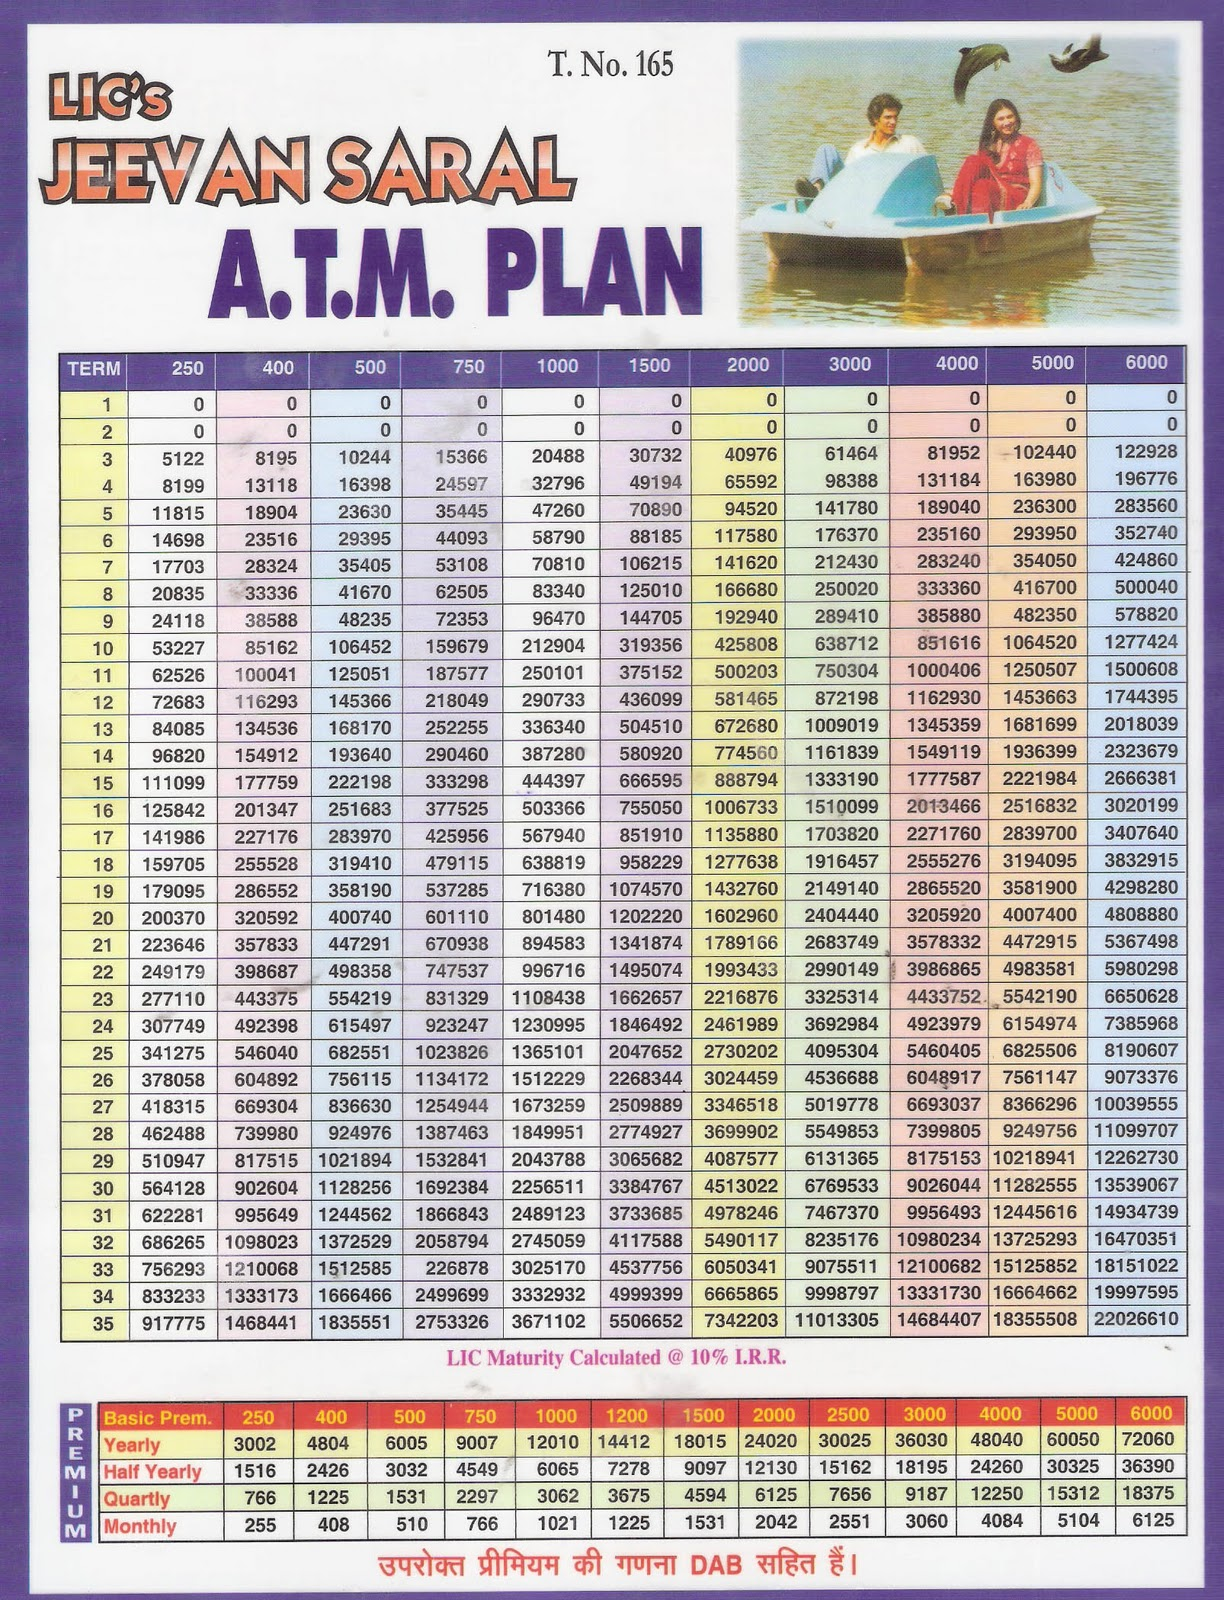 Lic Jeevan Saral Atm Plan Maturity Calculator